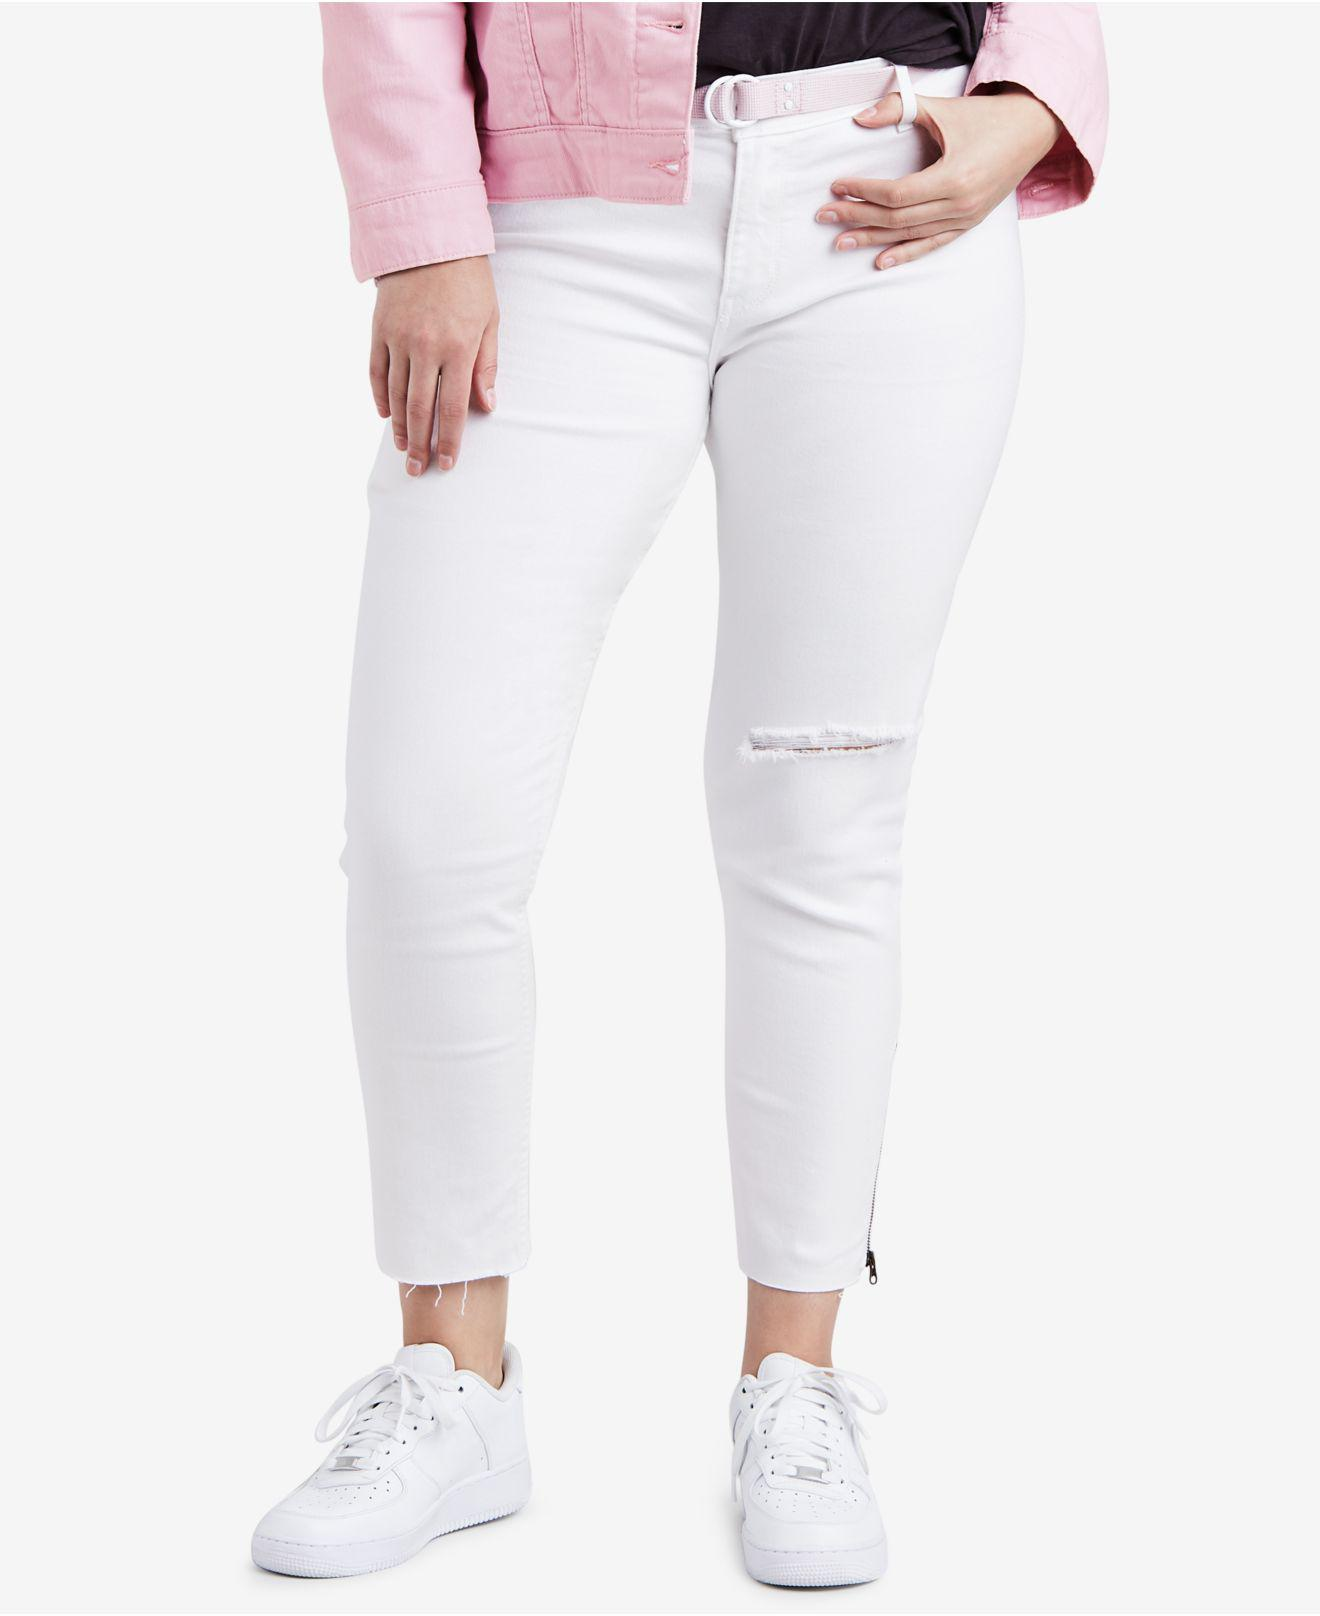 e07c44953f1 Lyst - Levi s ® Plus Size 711 Ripped Skinny Ankle Jeans in White